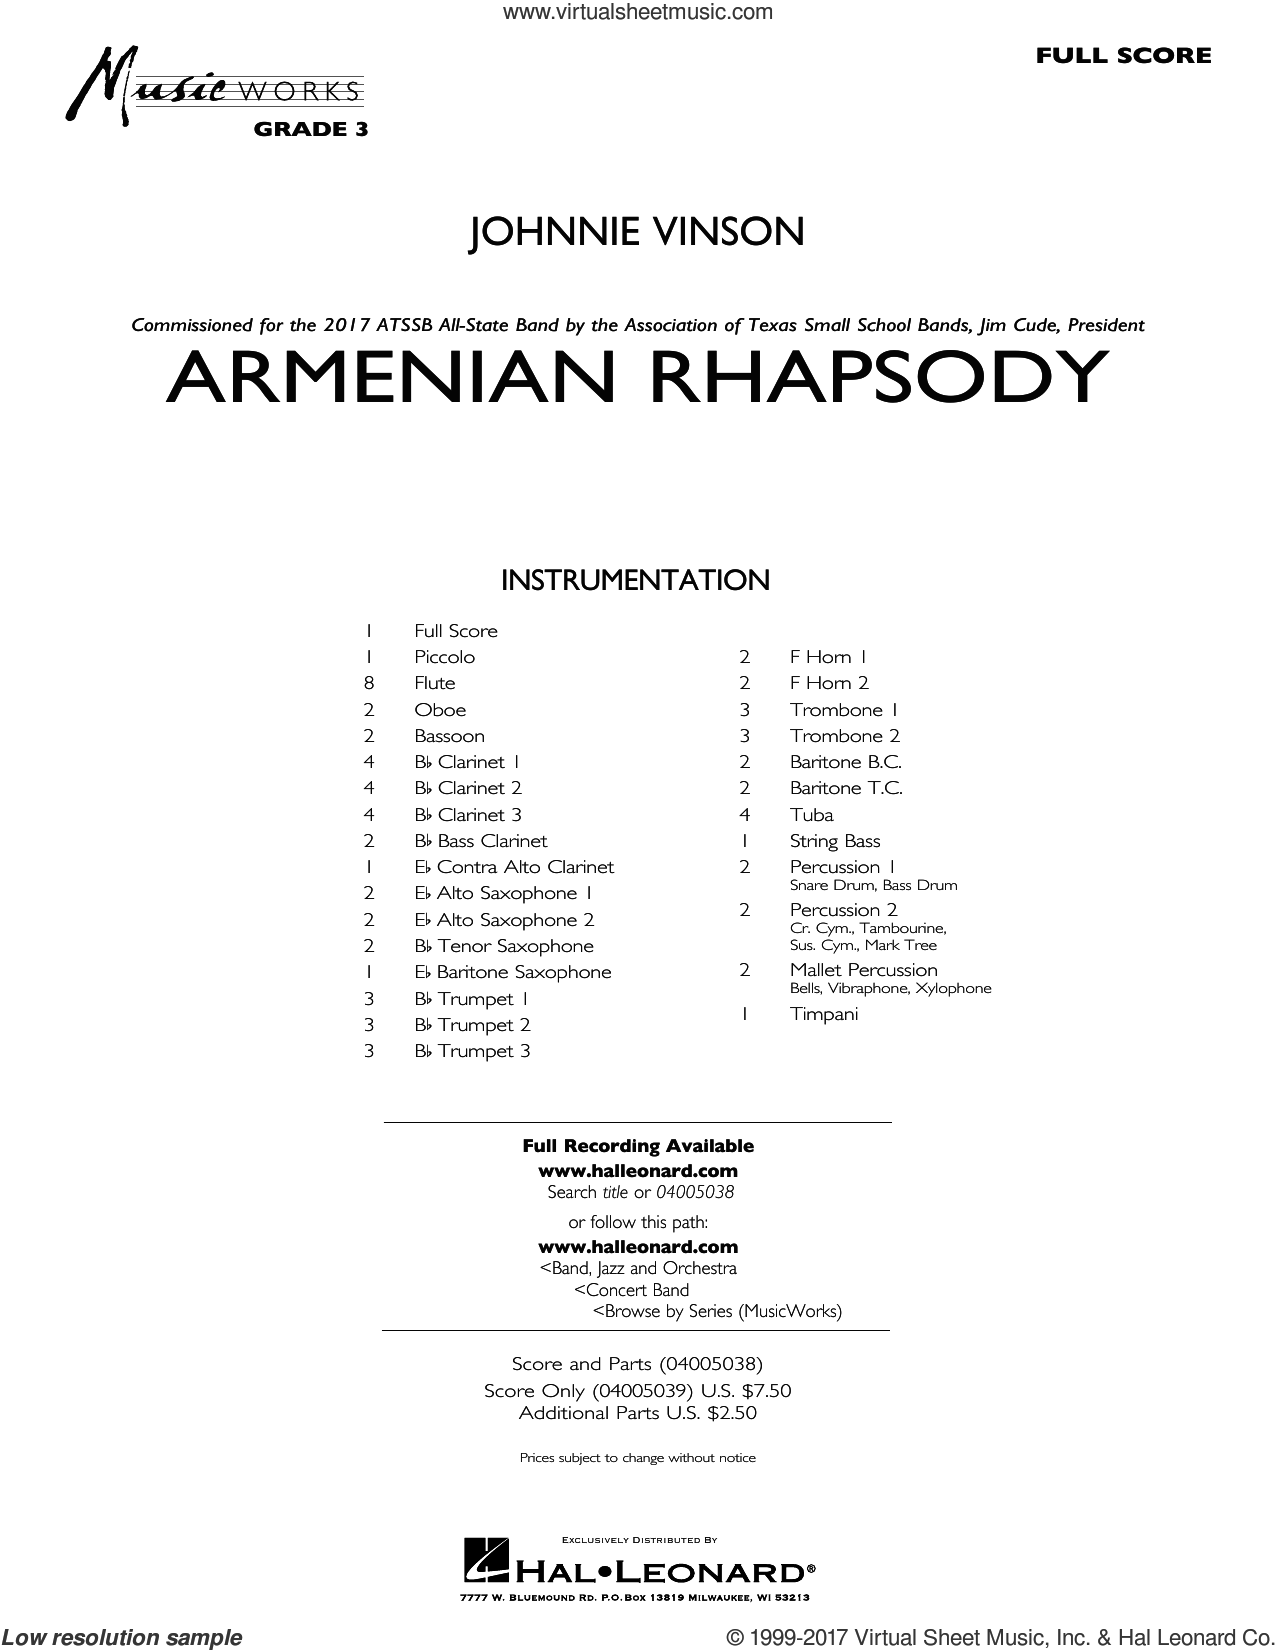 Armenian Rhapsody (COMPLETE) sheet music for concert band by Johnnie Vinson, intermediate concert band. Score Image Preview.